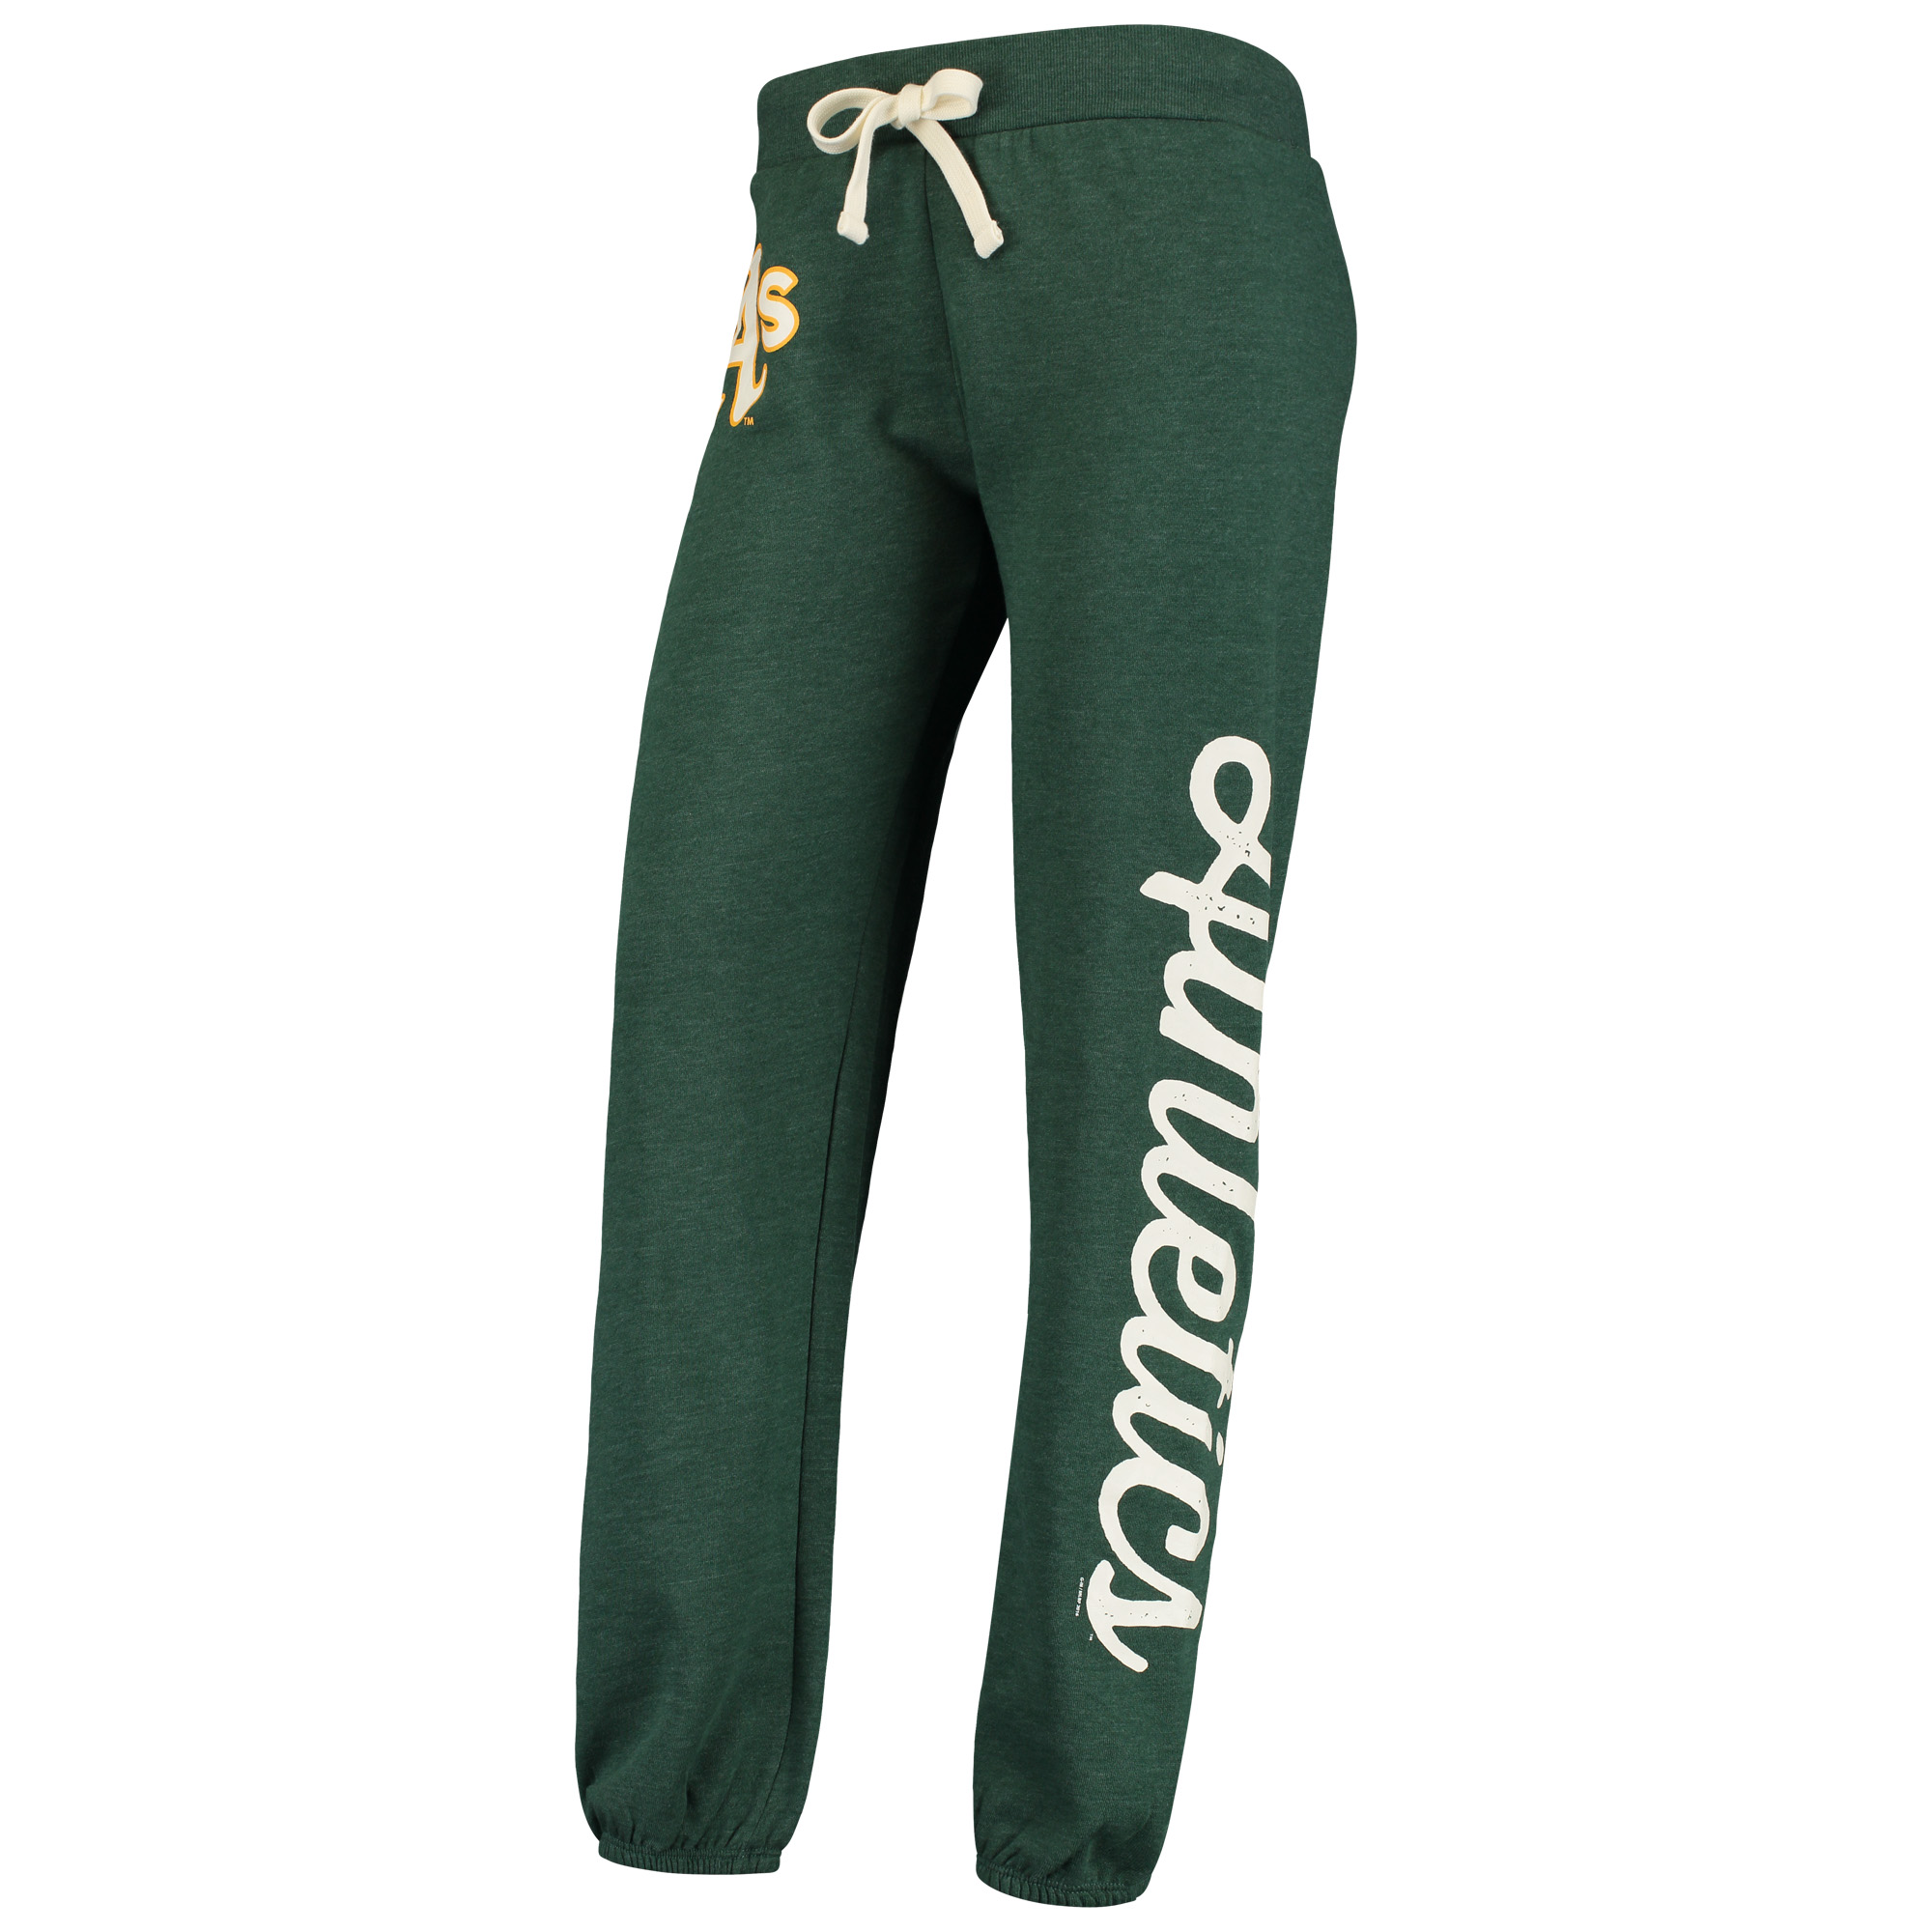 Oakland Athletics G-III 4Her by Carl Banks Women's Scrimmage Pants - Green -